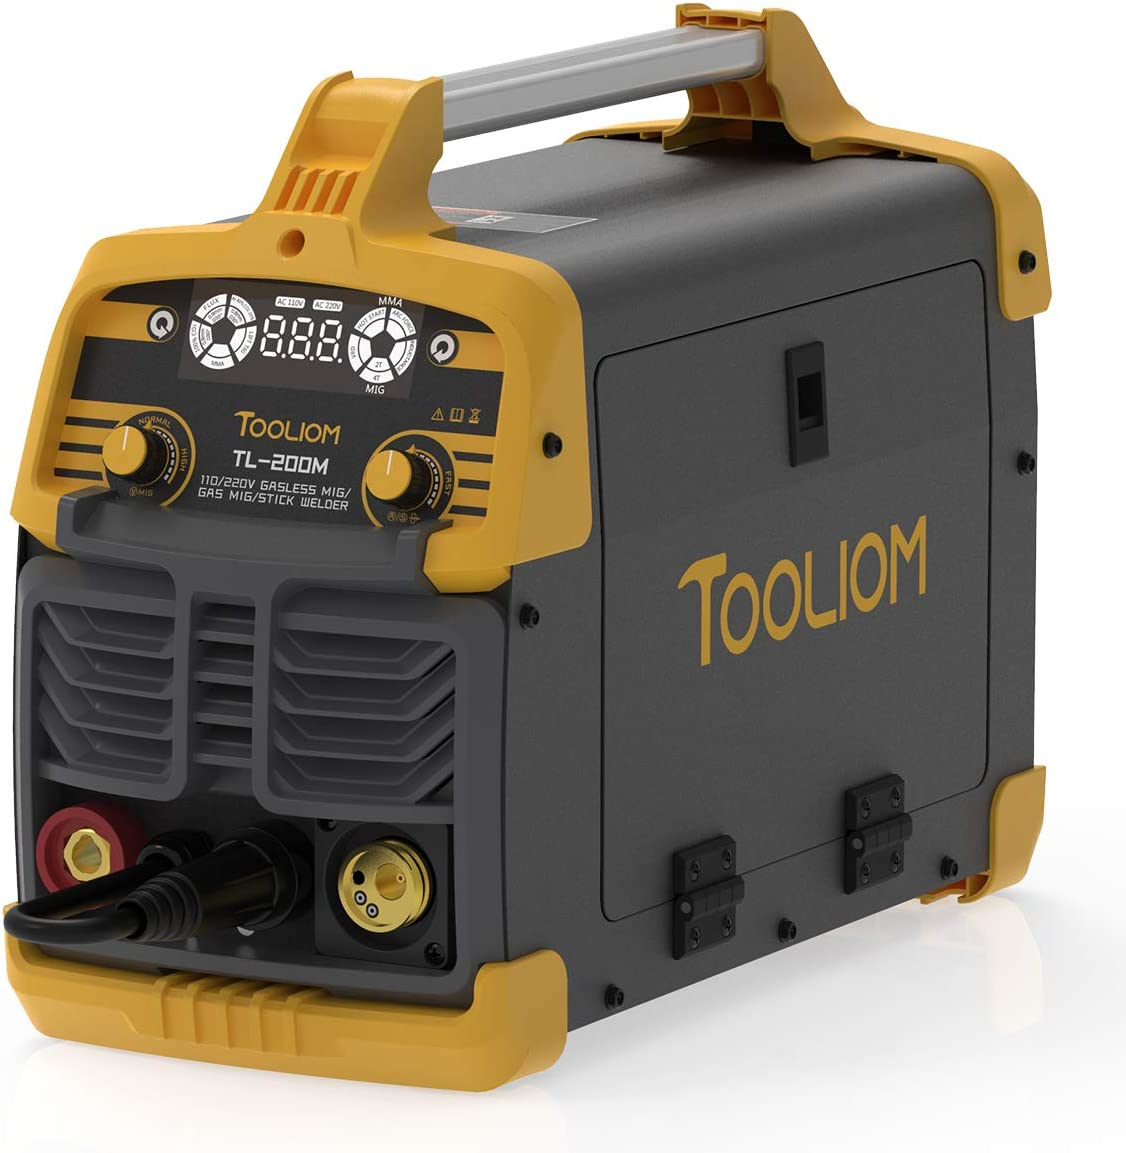 TOOLIOM Brand new 200A MIG Welder 3 in 1 Wire Max 48% OFF Solid Lift TIG Flux